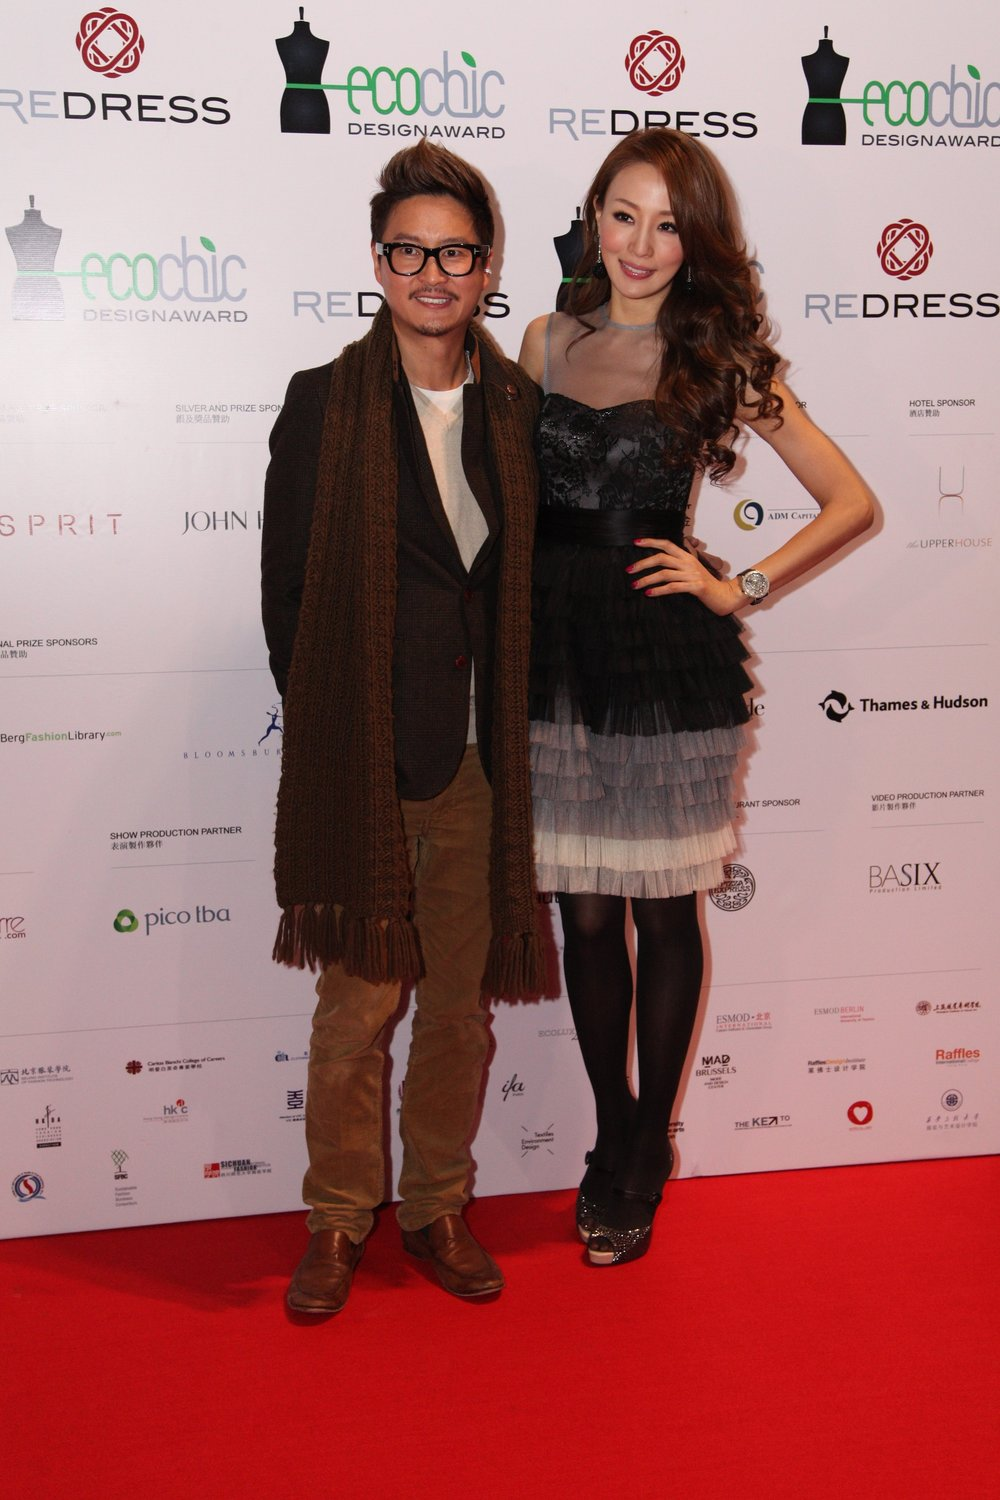 Designer Dorian Ho and Hong Kong supermodel Eunis Chan attend the Redress Design Award 2013 Grand Final Show